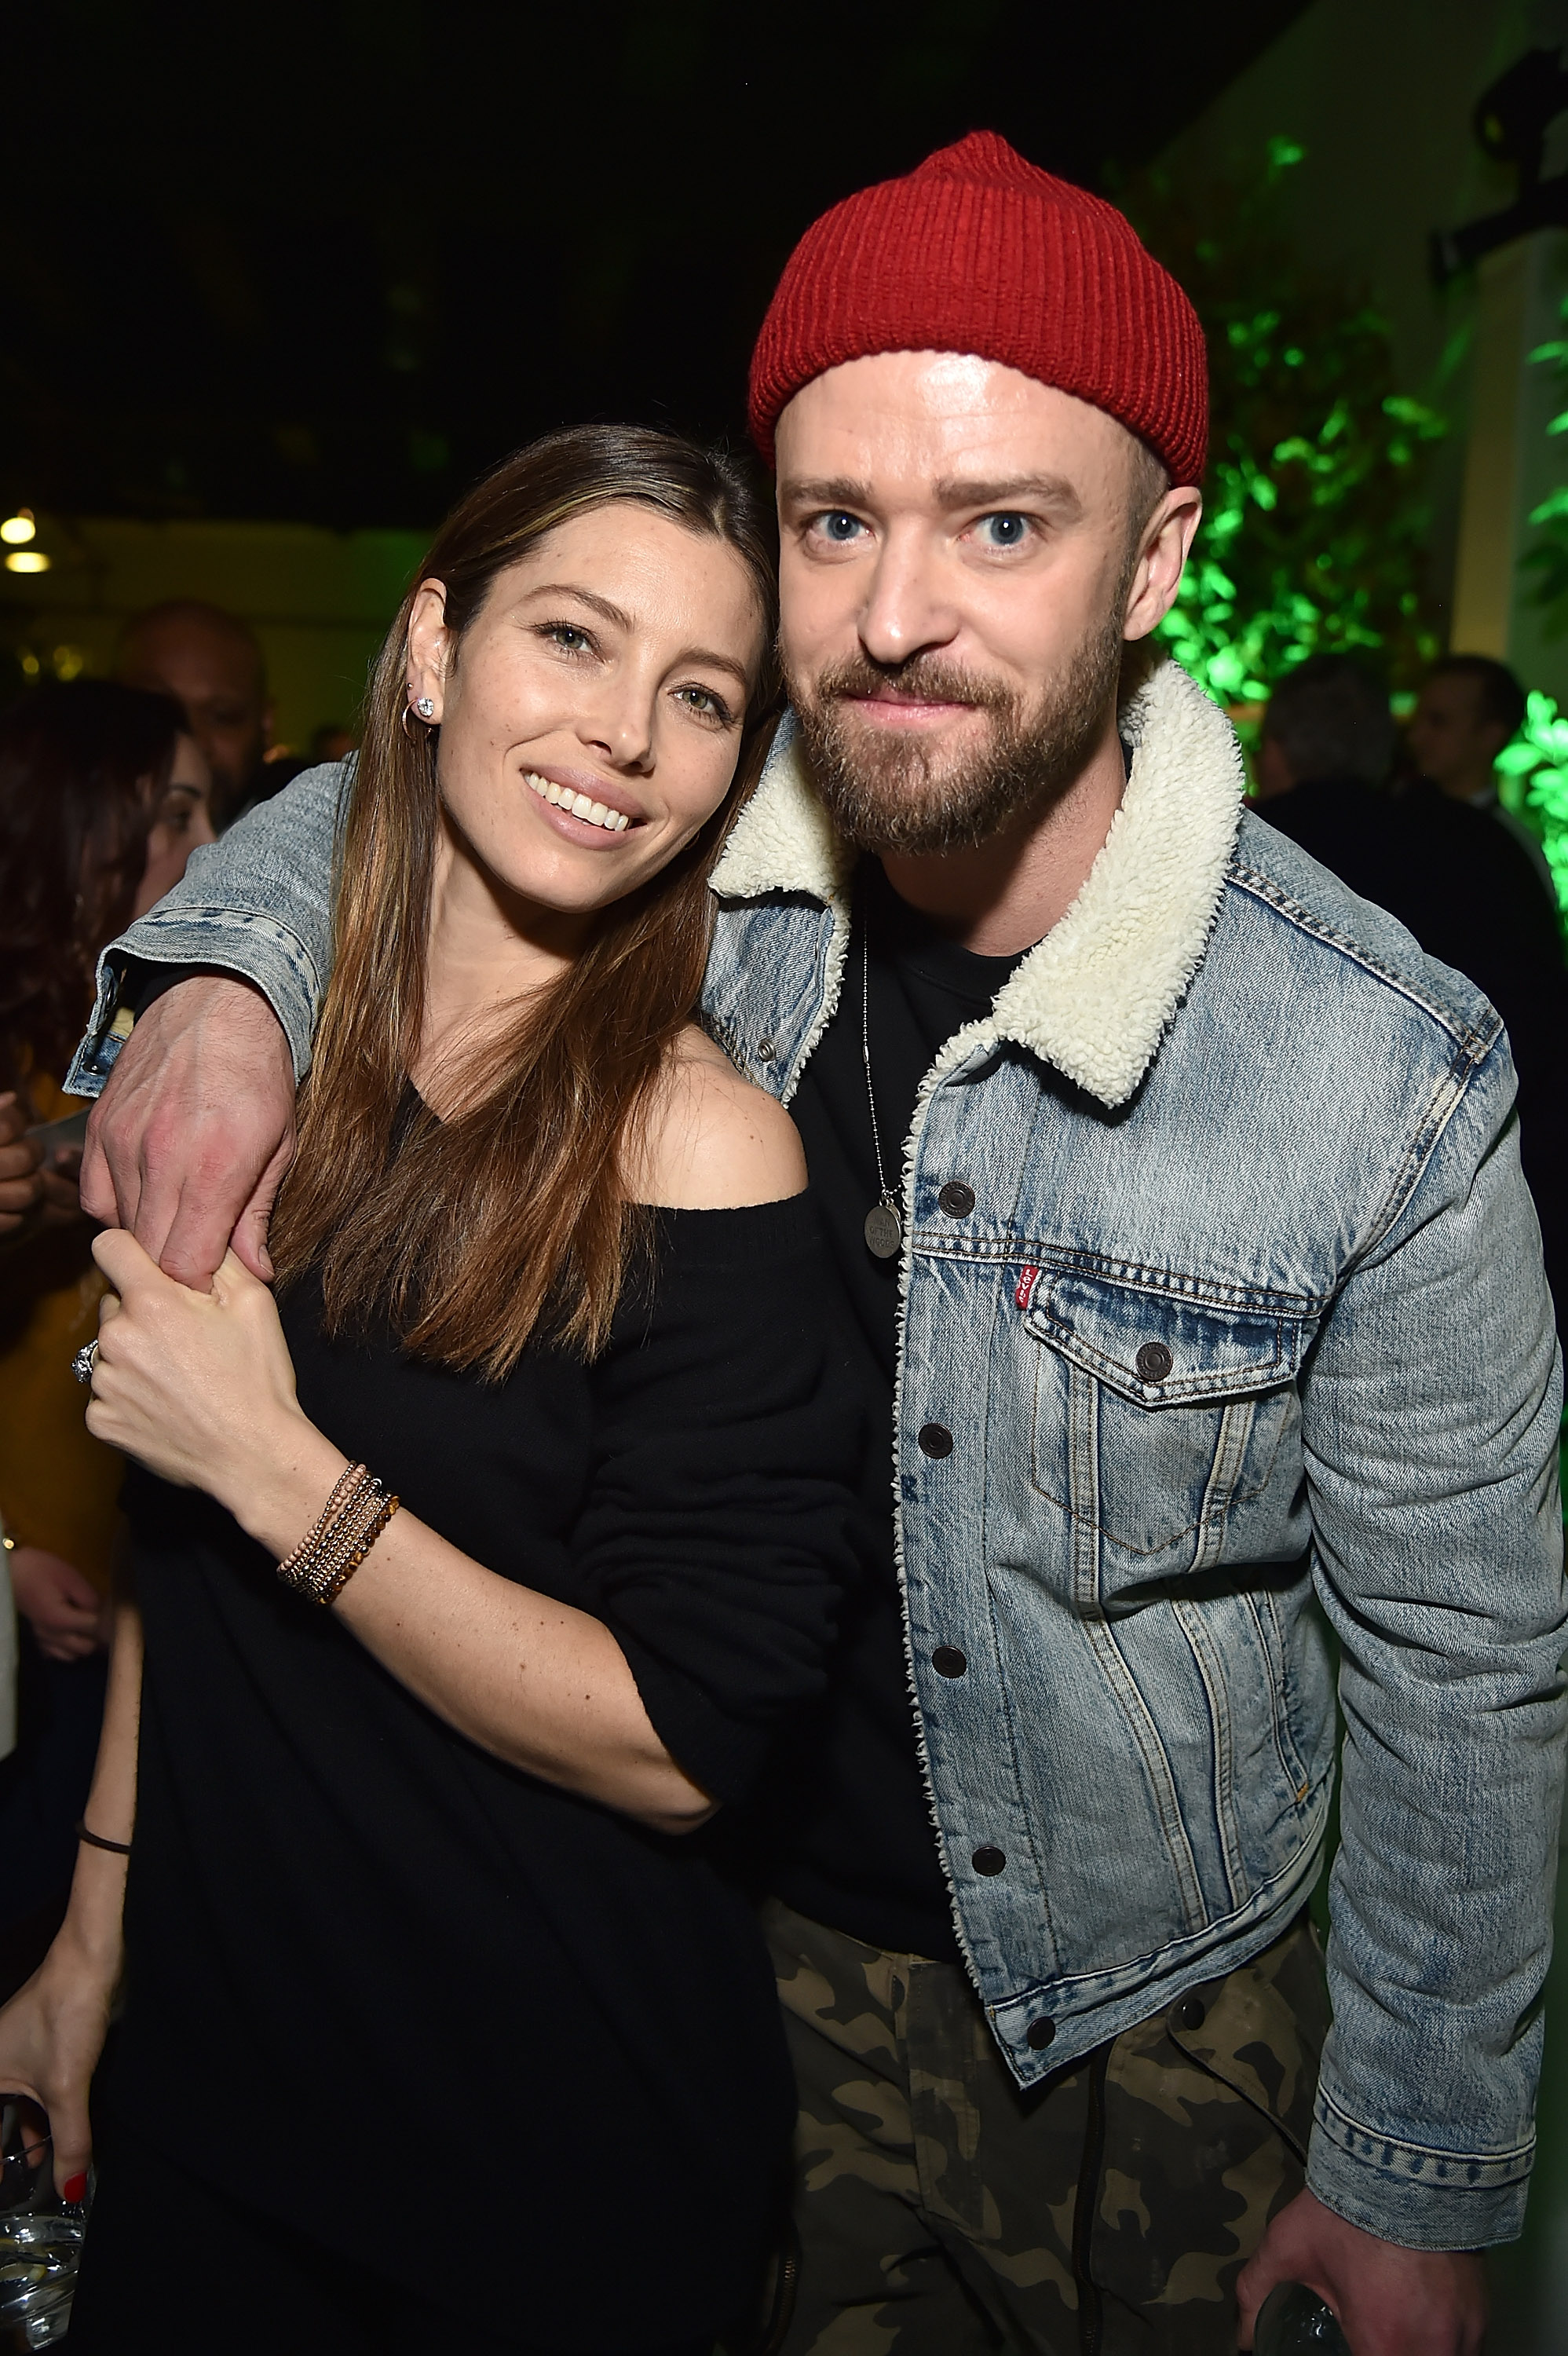 American Express x Justin Timberlake 'Man Of The Woods' Listening Session at Clarkson Square